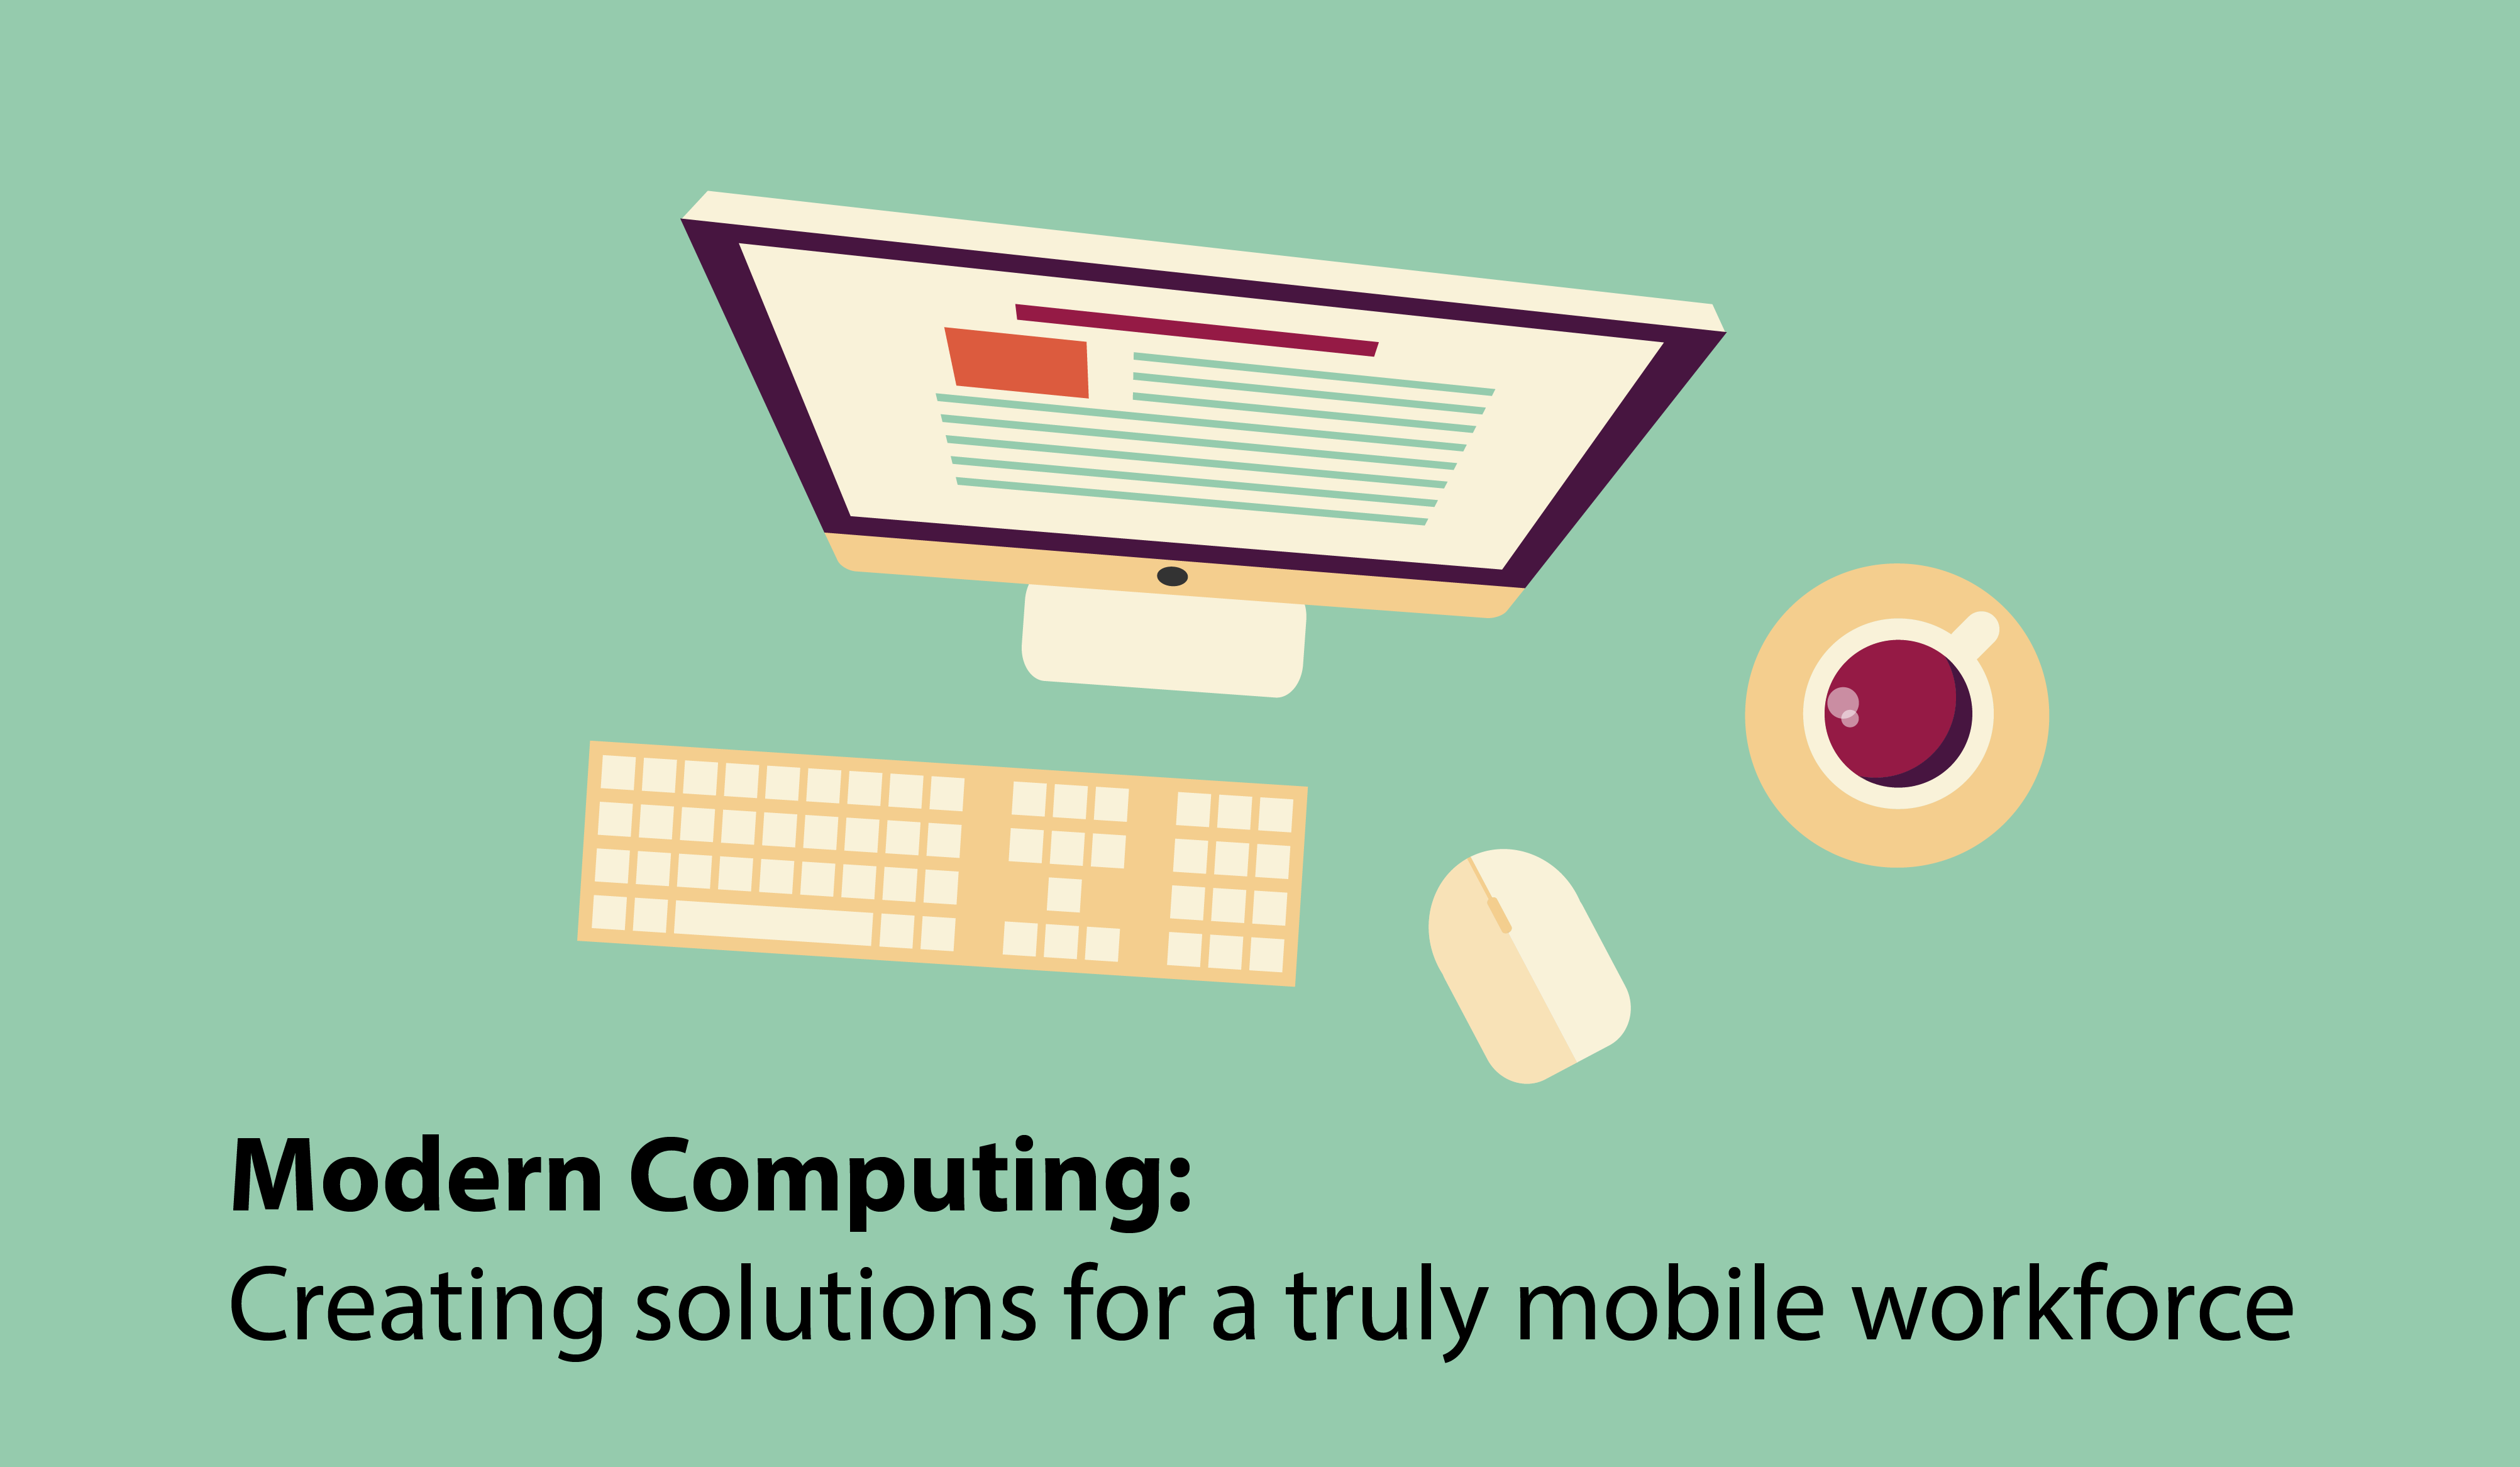 Modern Computing: Creating solutions for a truly mobile workforce.